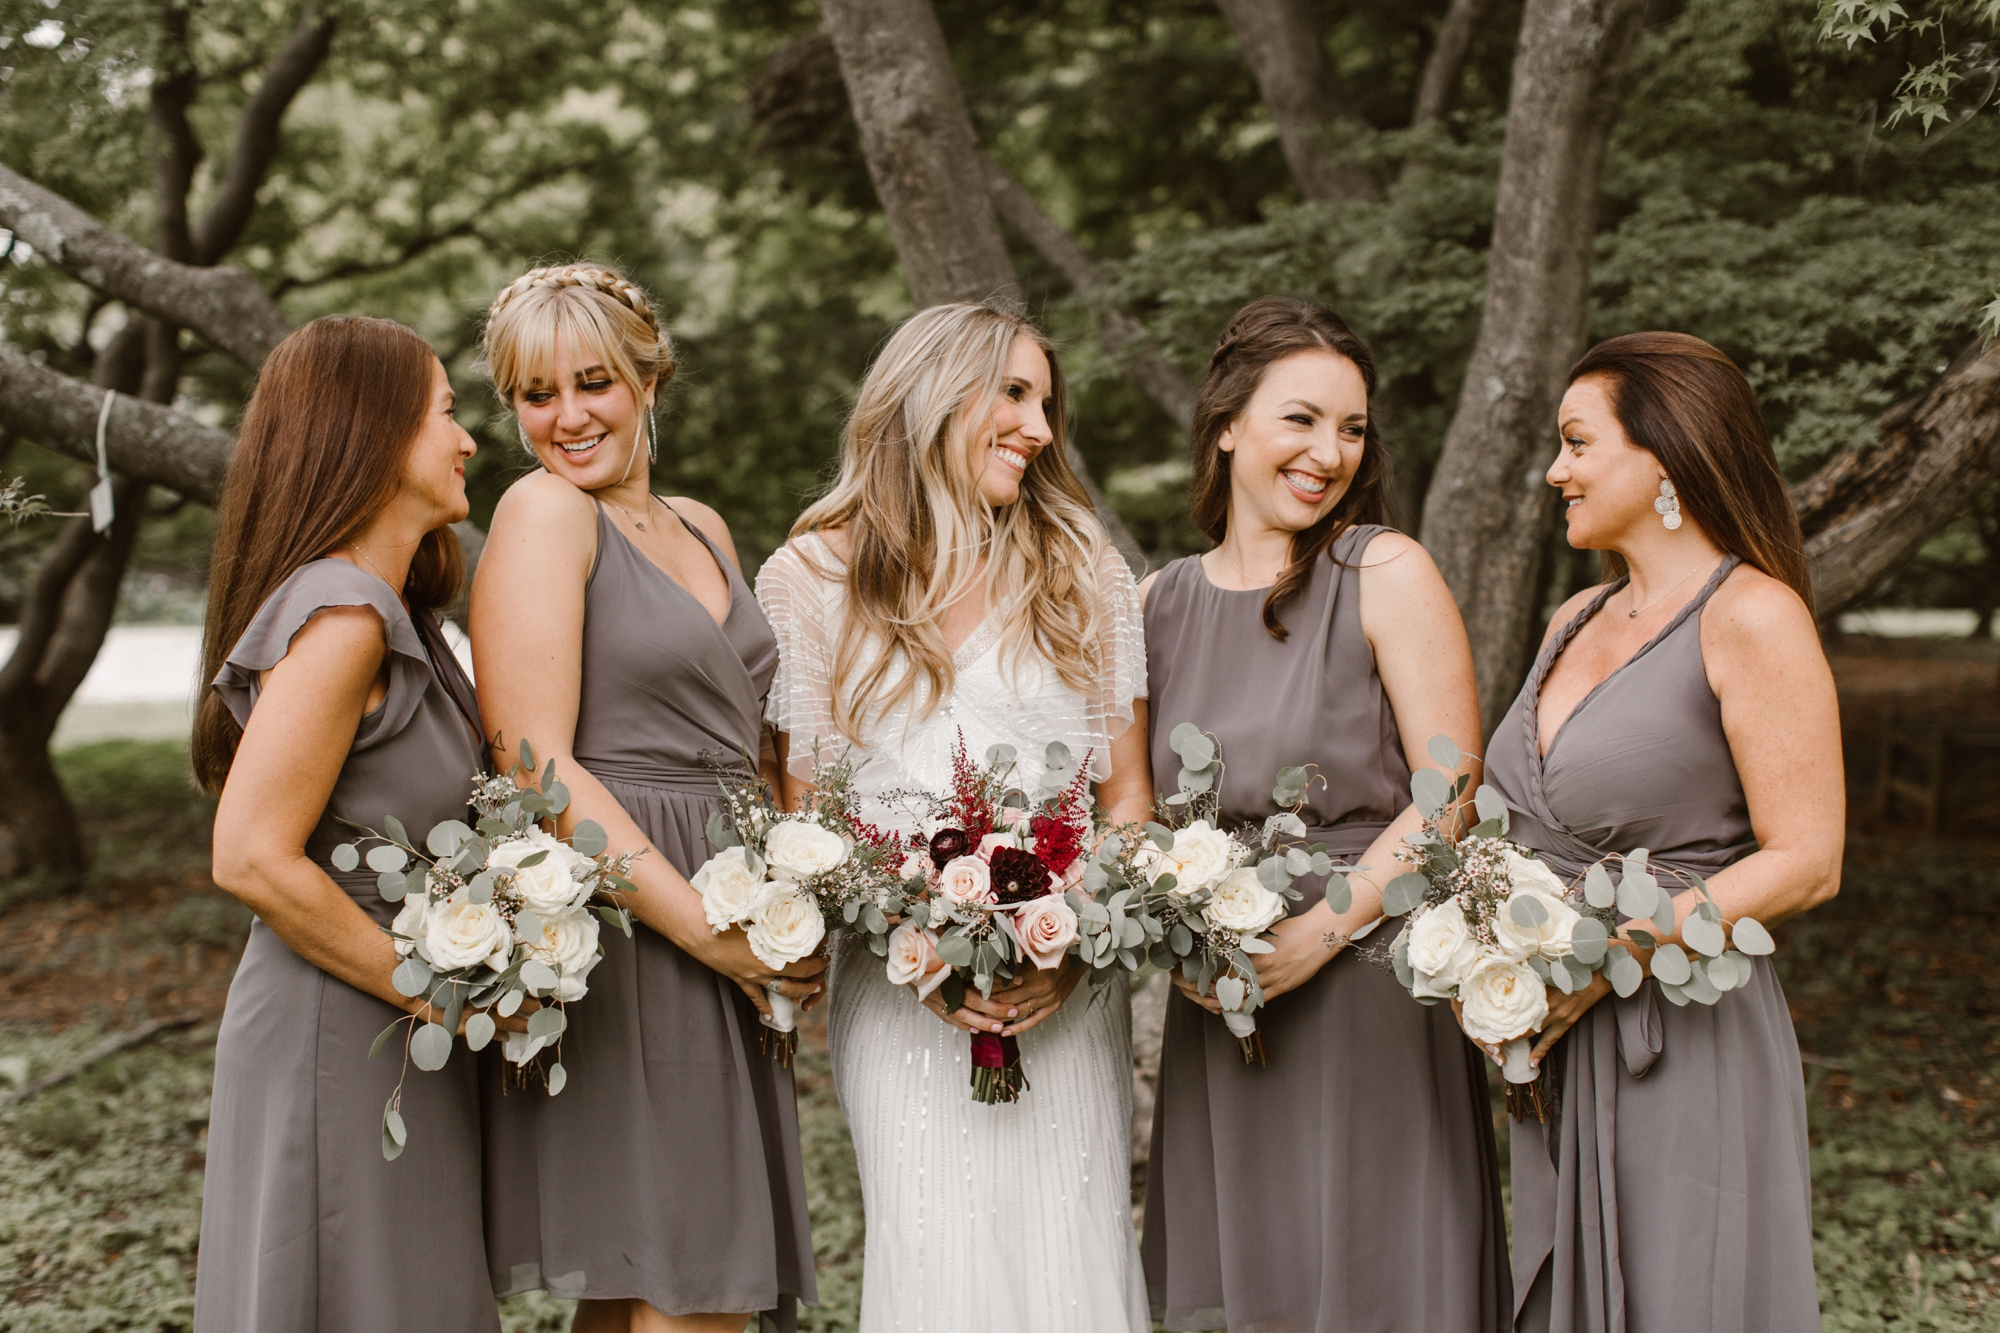 Bridesmaid Dresses Baltimore - Wedding Dress Ideas